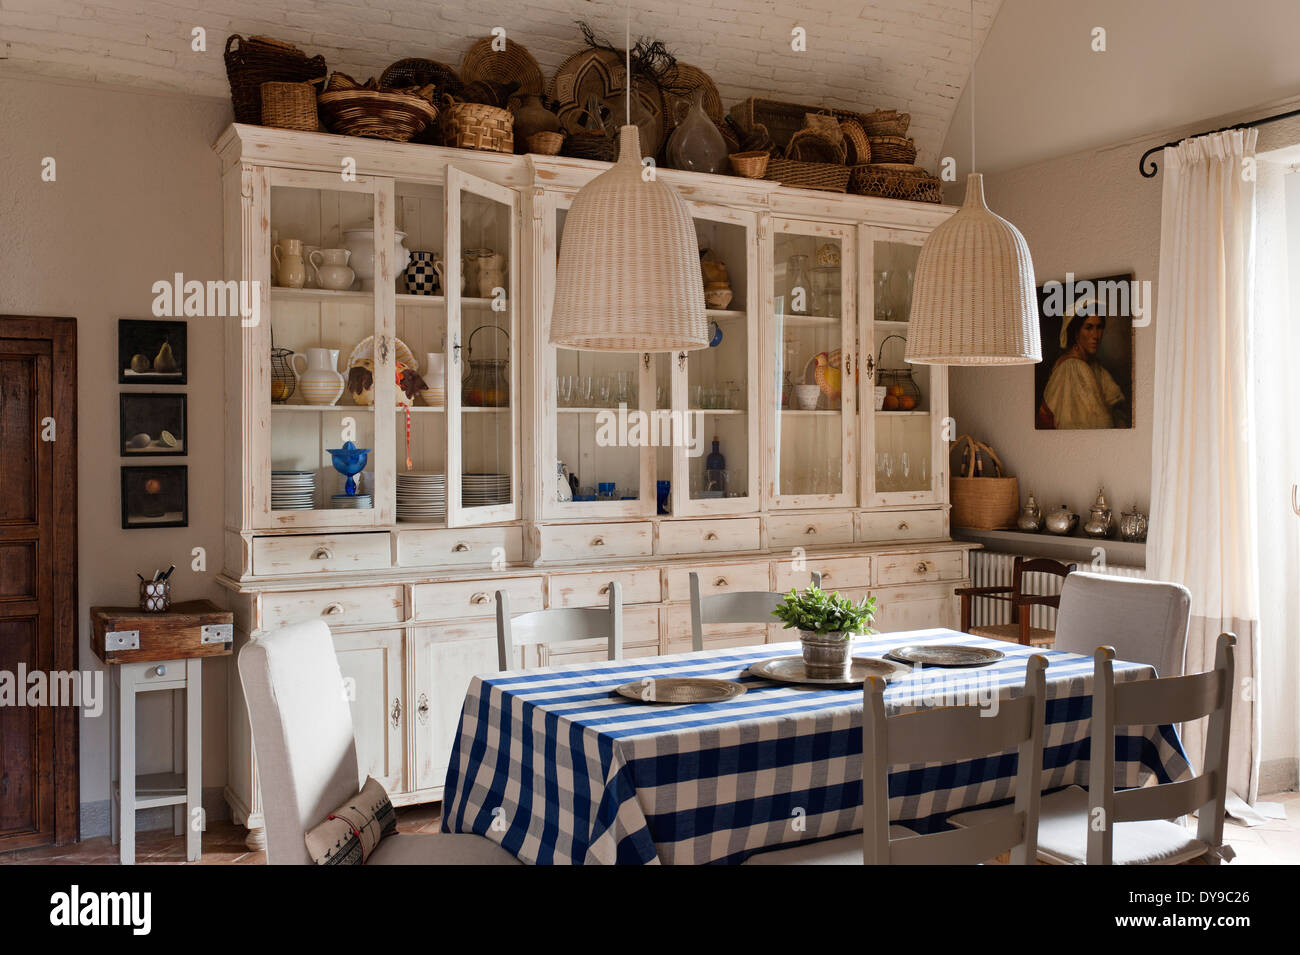 Rustic Country Kitchen With French Style Cabinets Checked